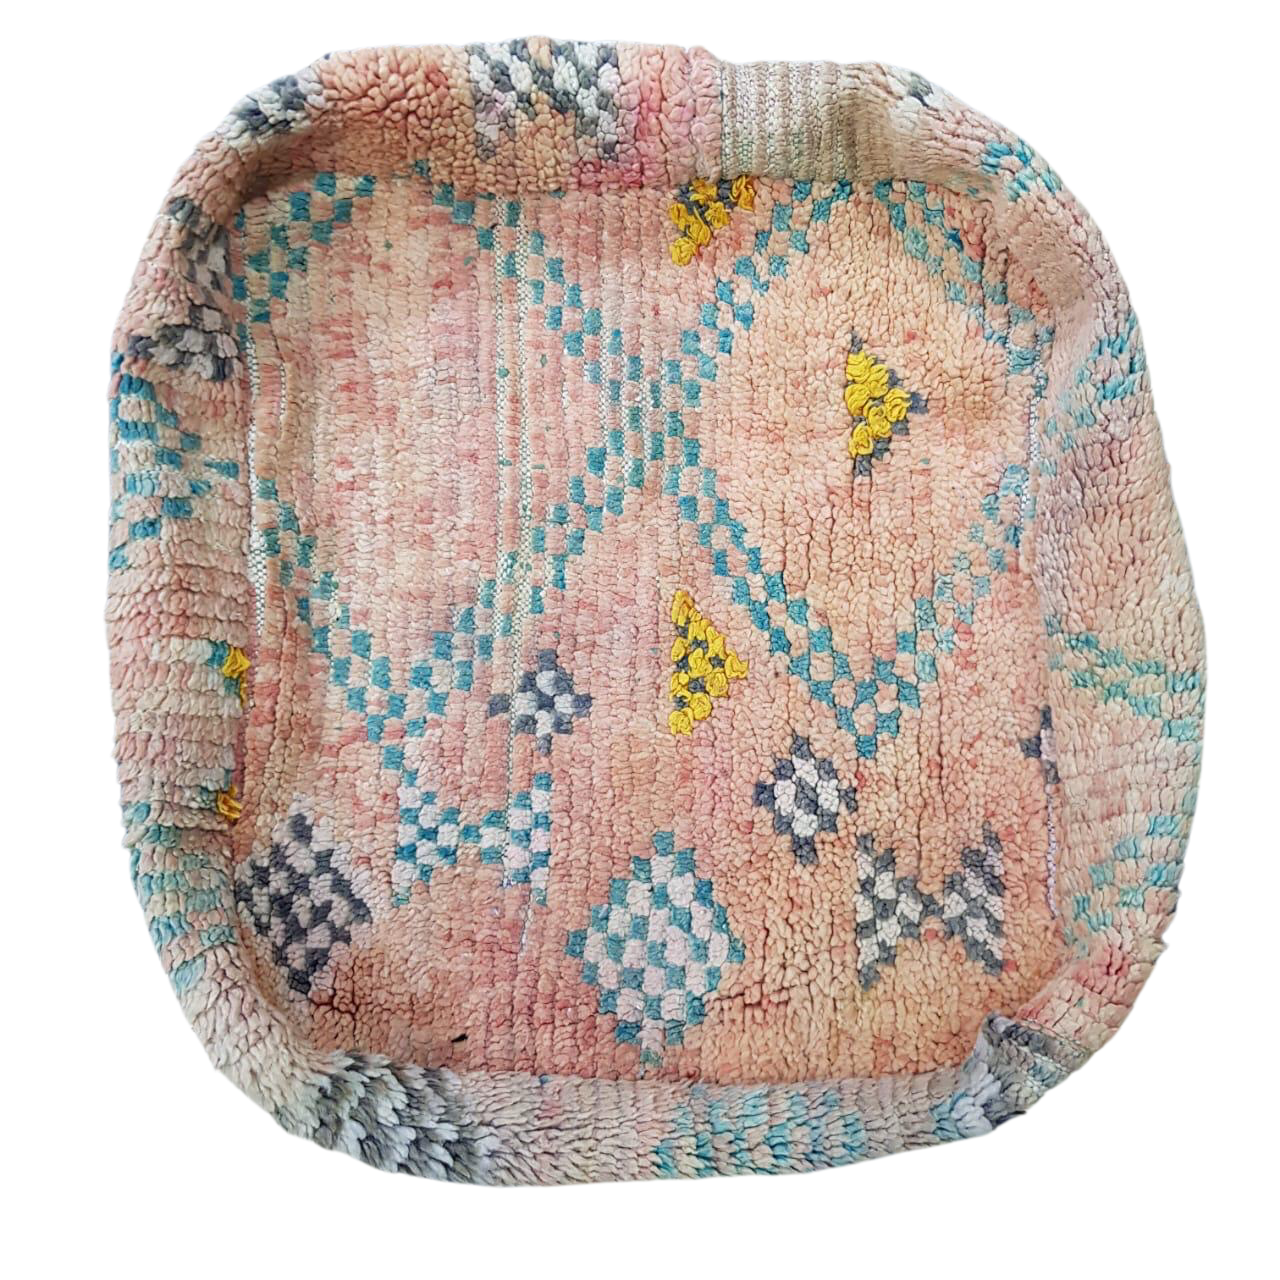 Moroccan Rug Cushion - Dusty Peach with Teal Diamonds